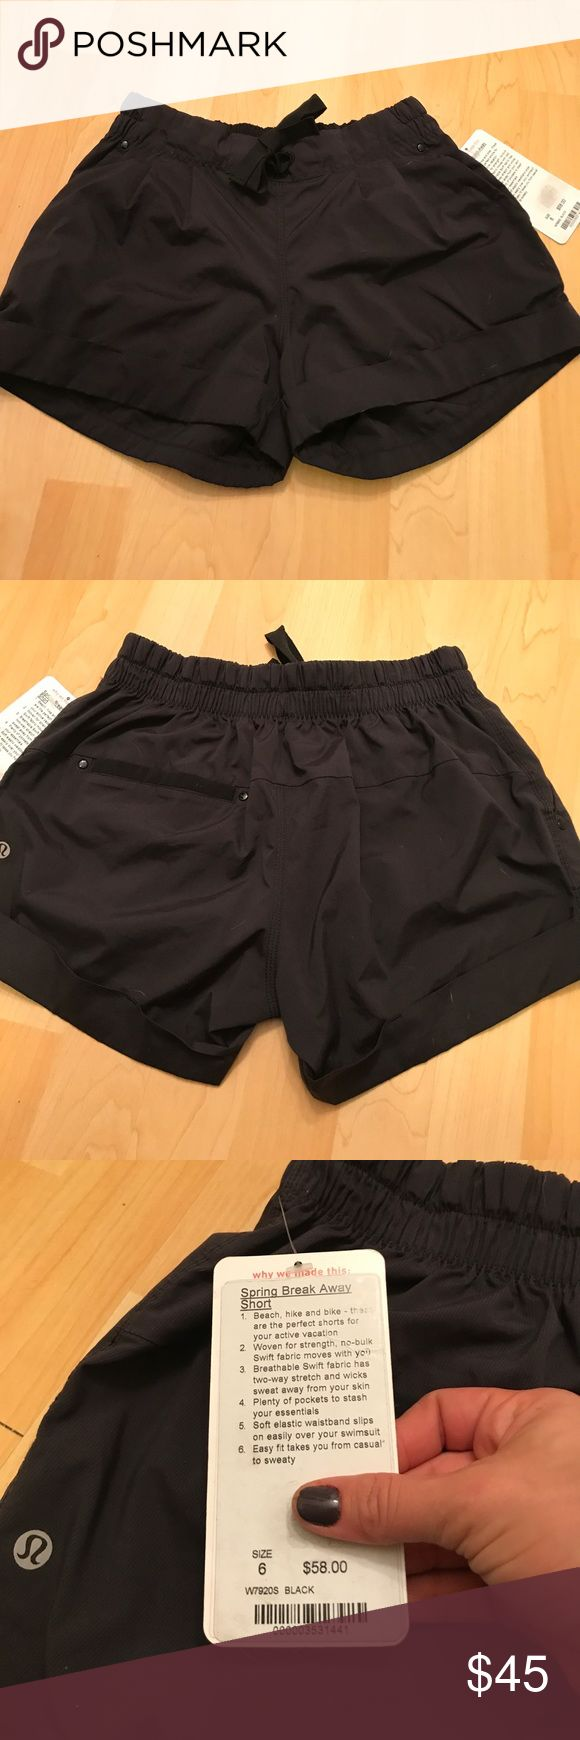 """Lululemon Spring Break Away Short 6 NWT New with tags. Black. 3"""" inseam. See tags for more details. lululemon athletica Shorts"""